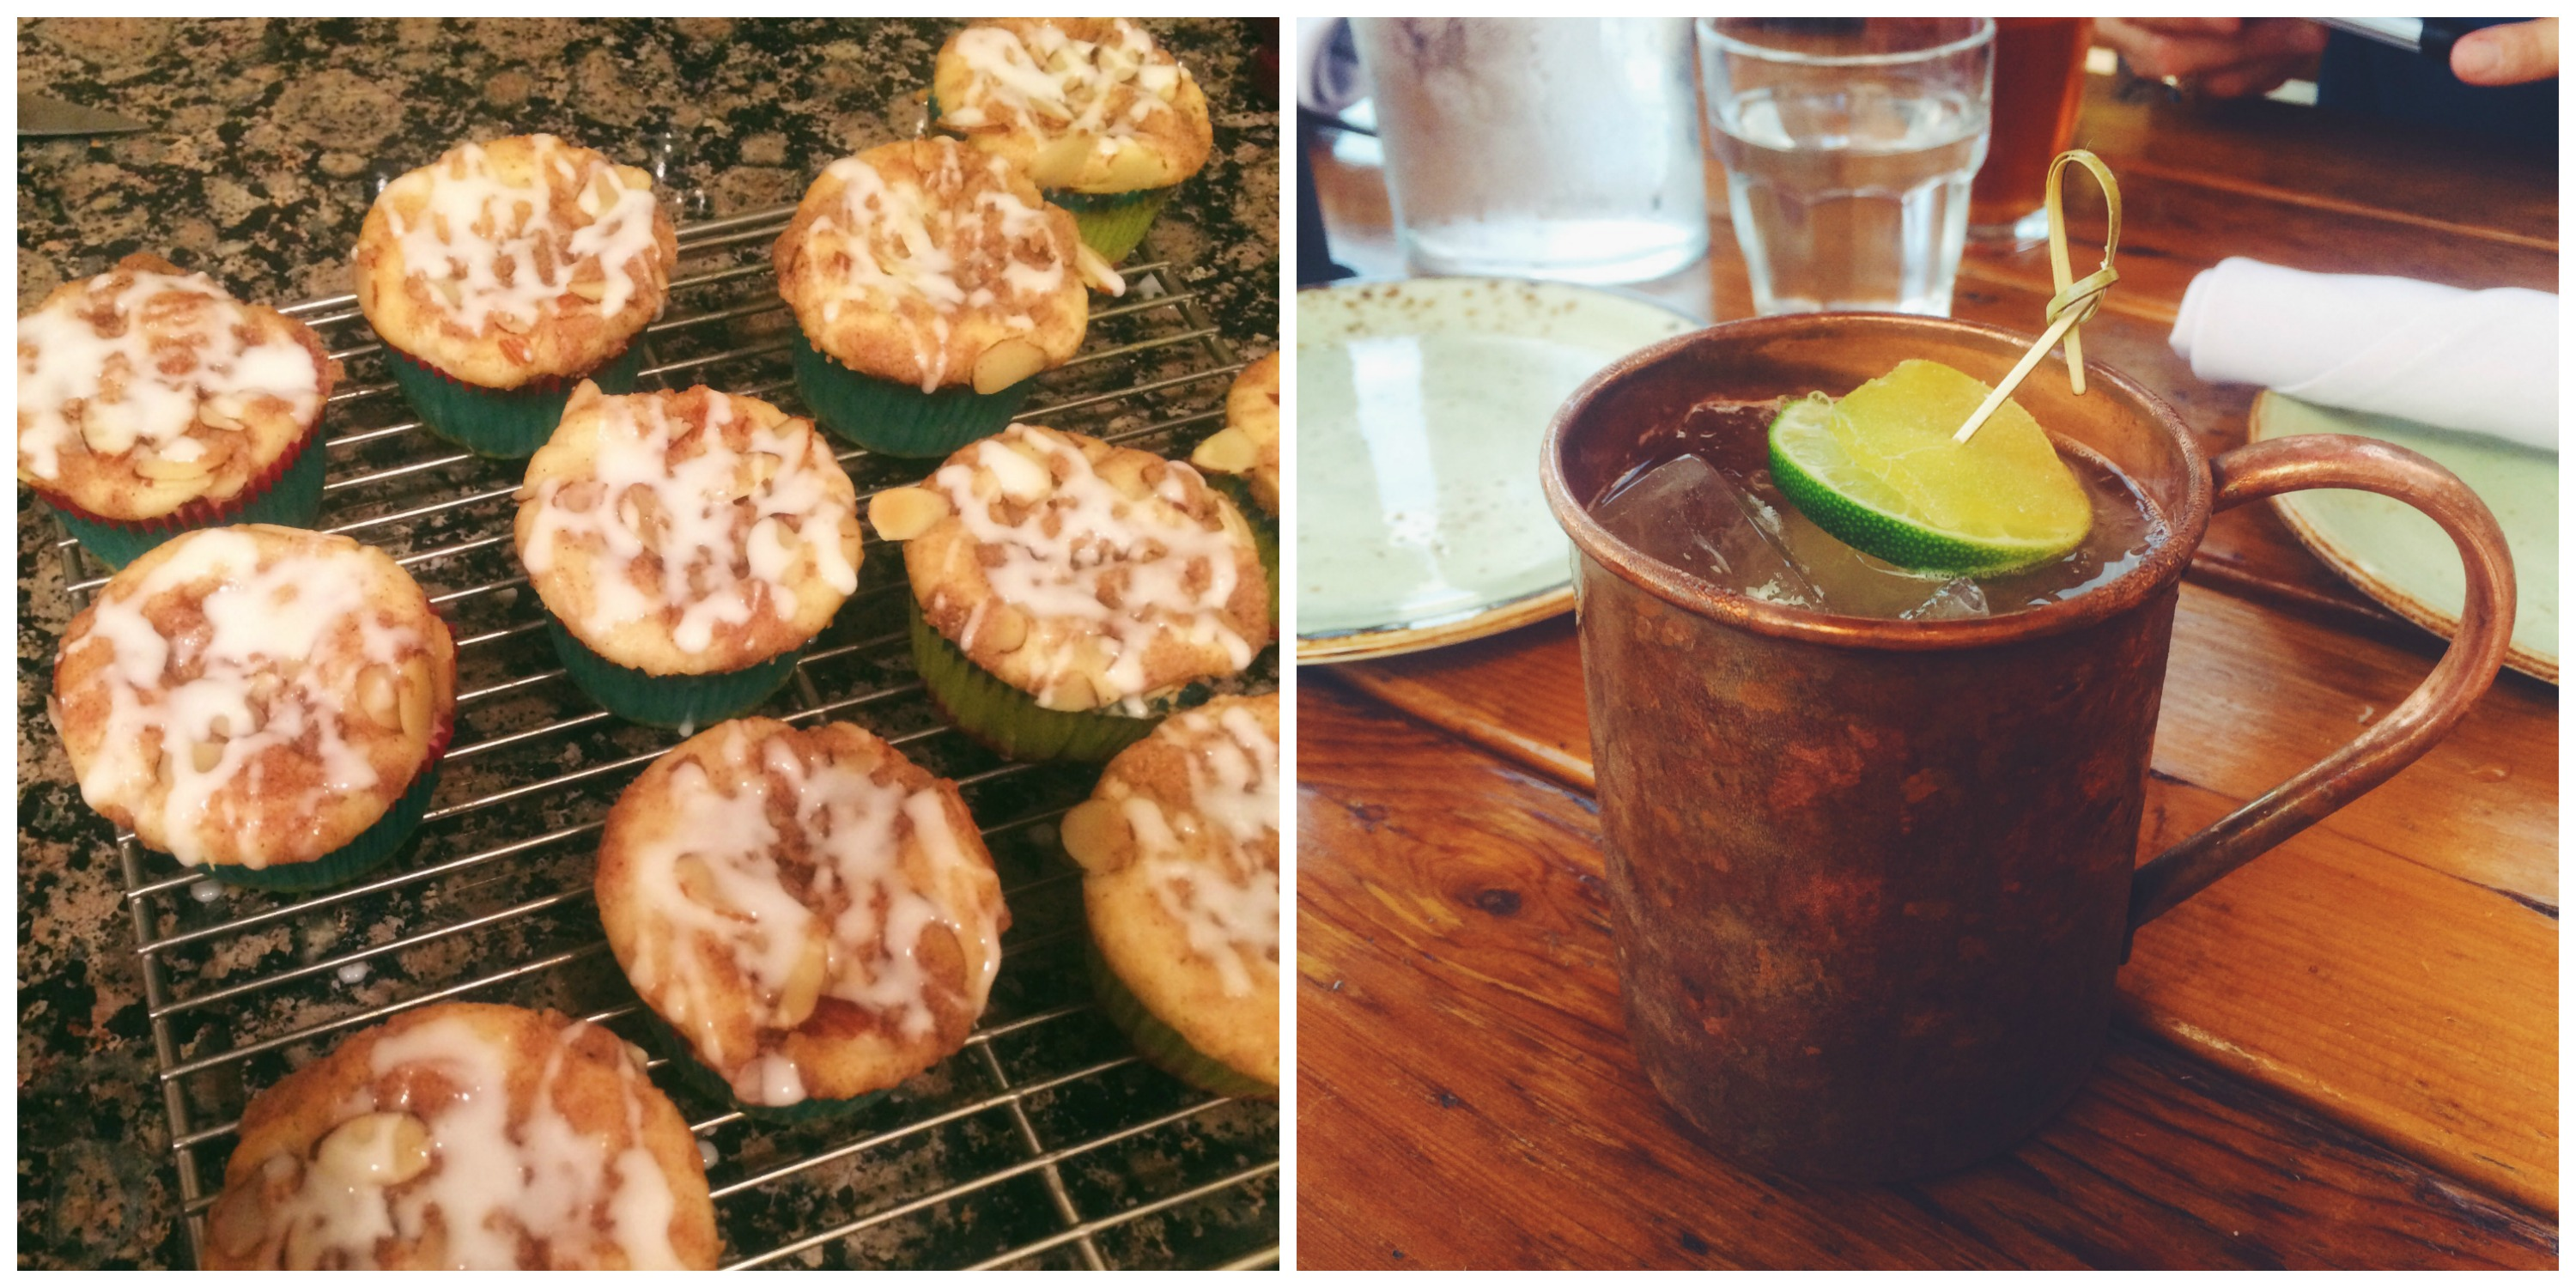 Muffins + The House Mule